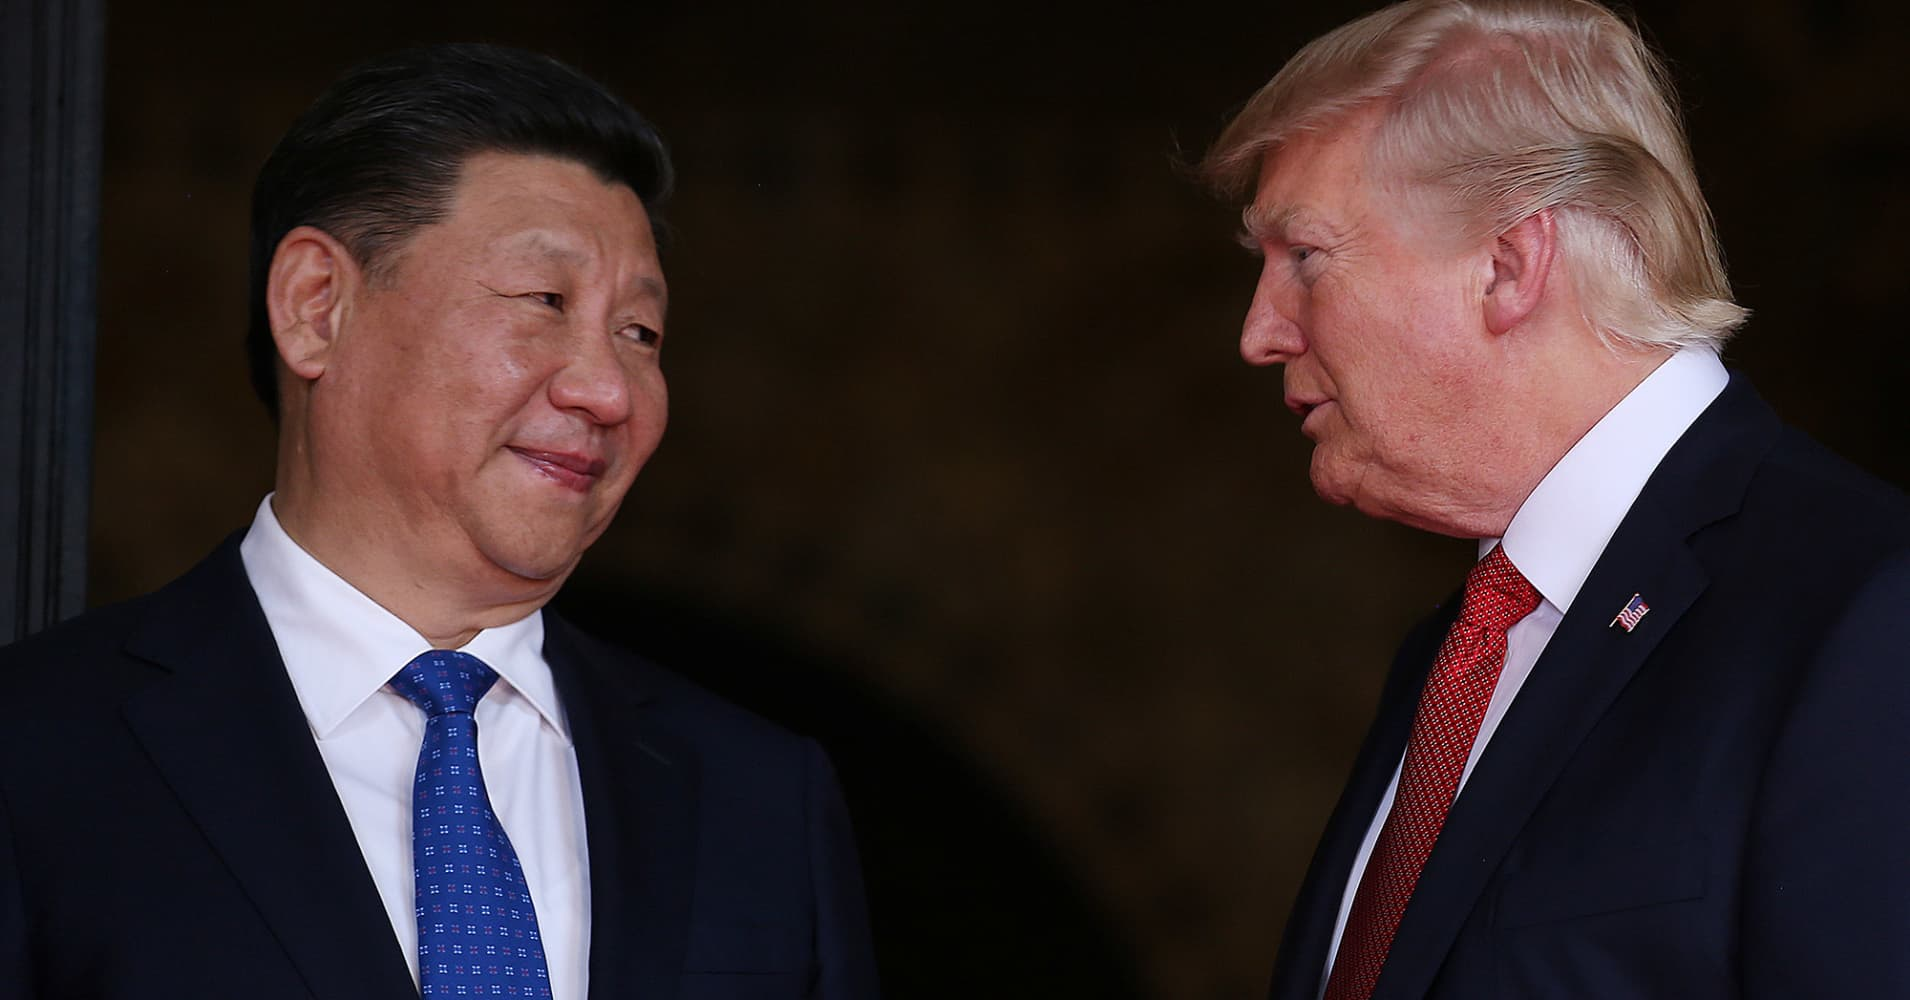 The US is defending the West's world order in its fight for balanced trade